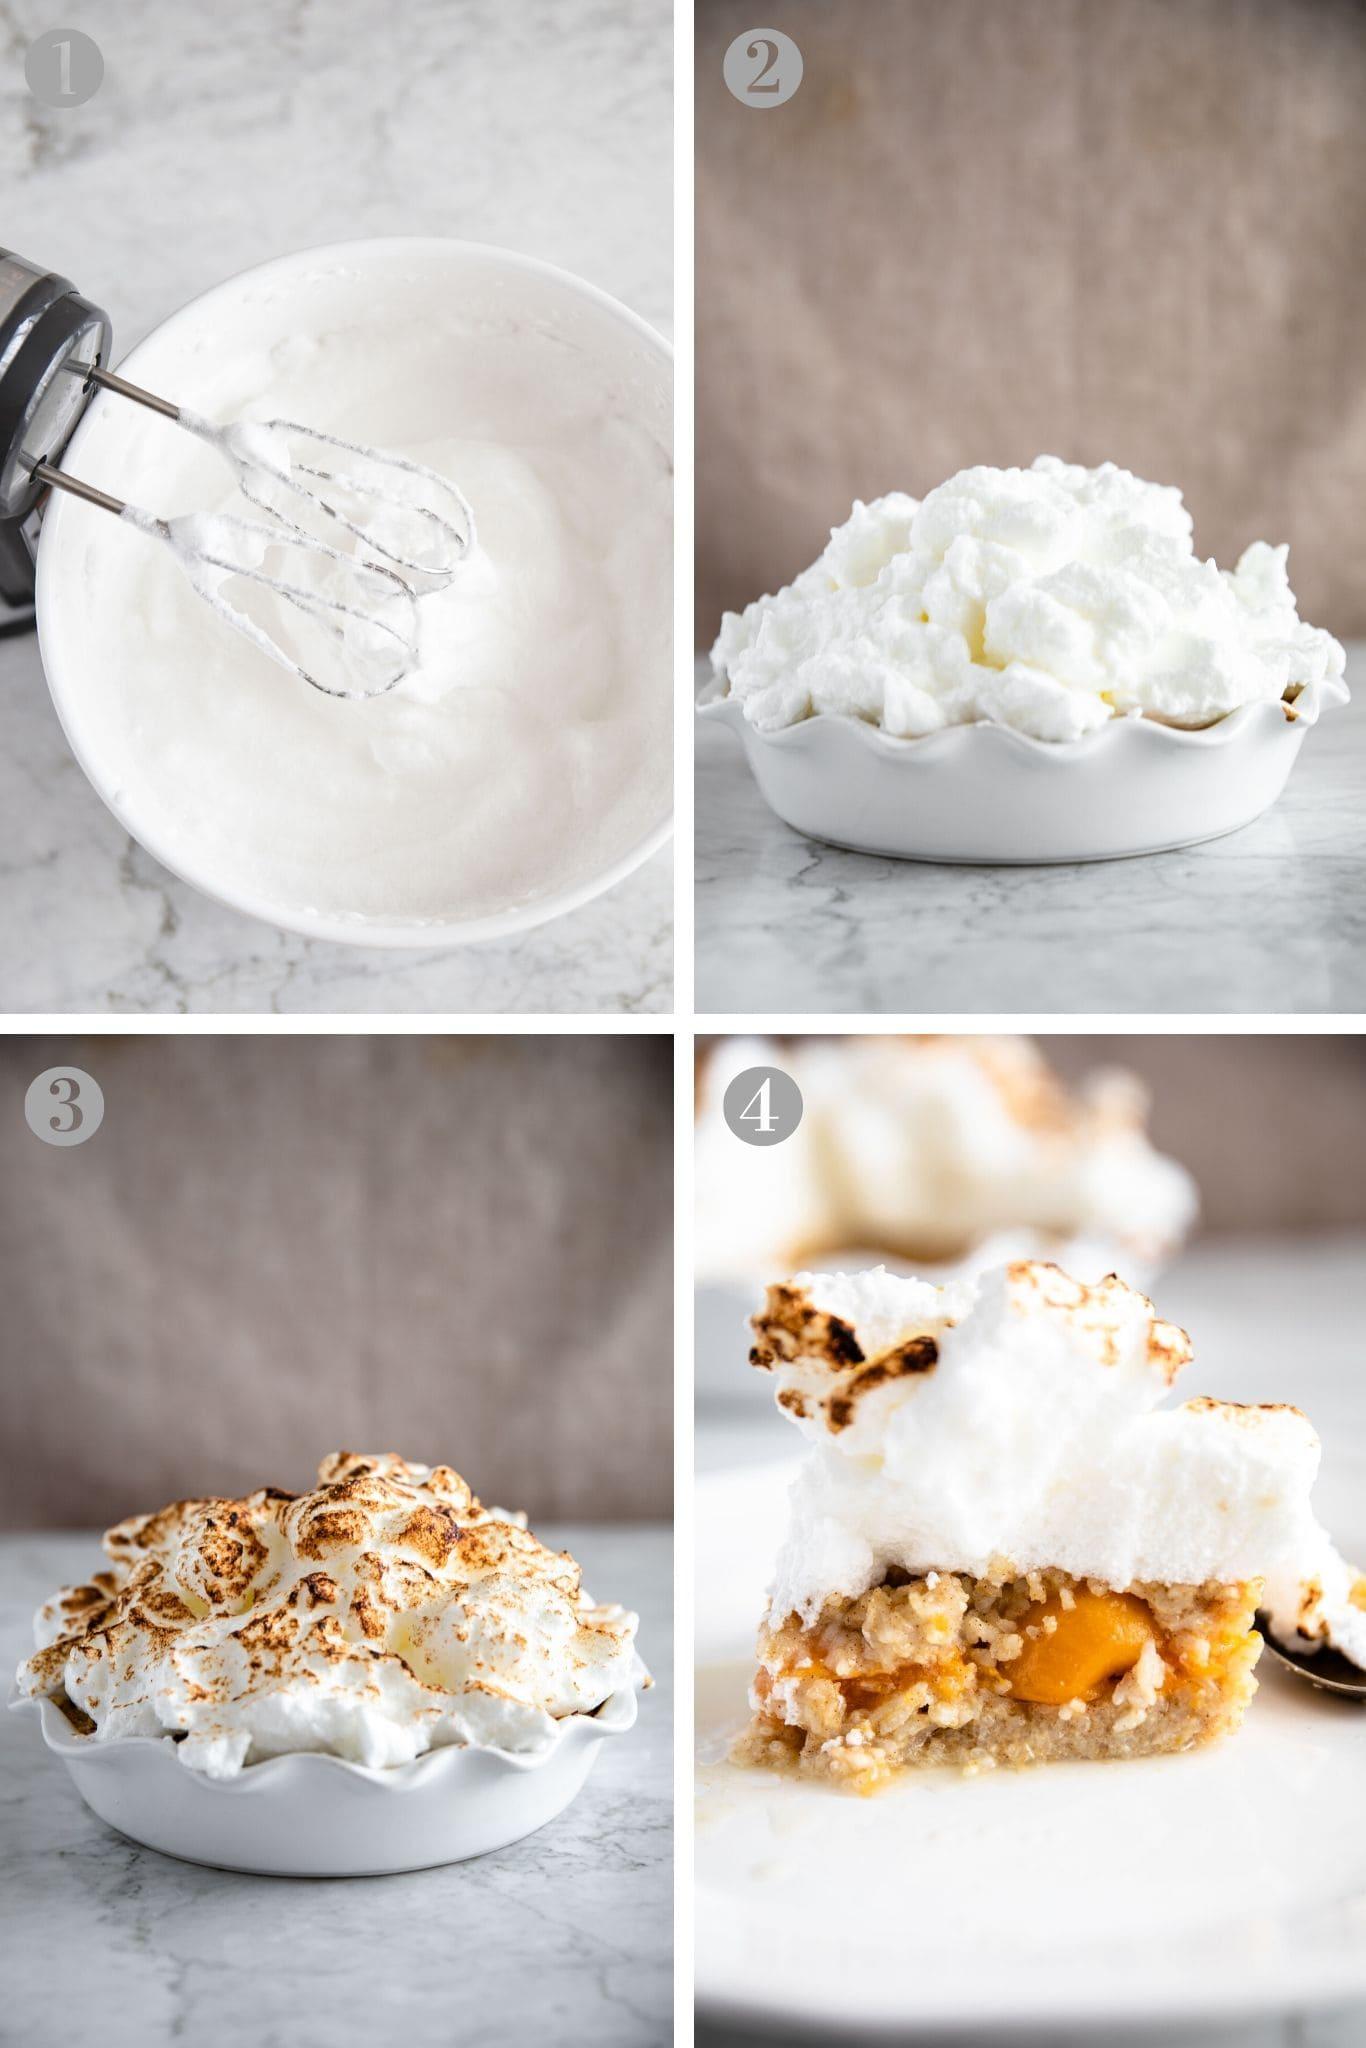 Steps to make meringue for Baked Rice Pudding with Apricots from verygoodcook.com